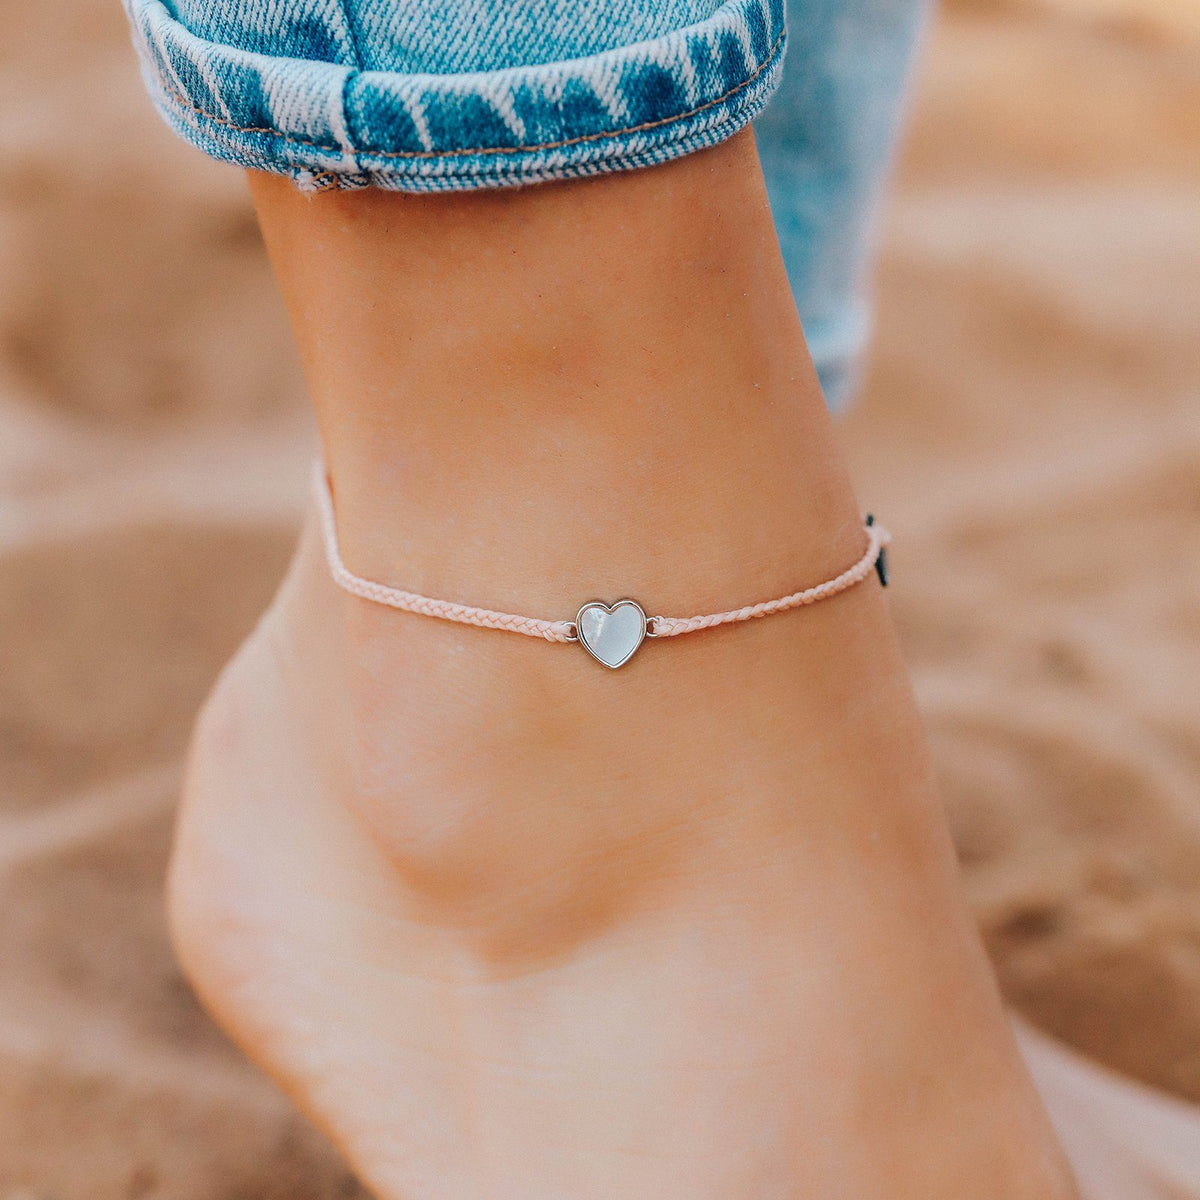 Heart of Pearl Anklet 4